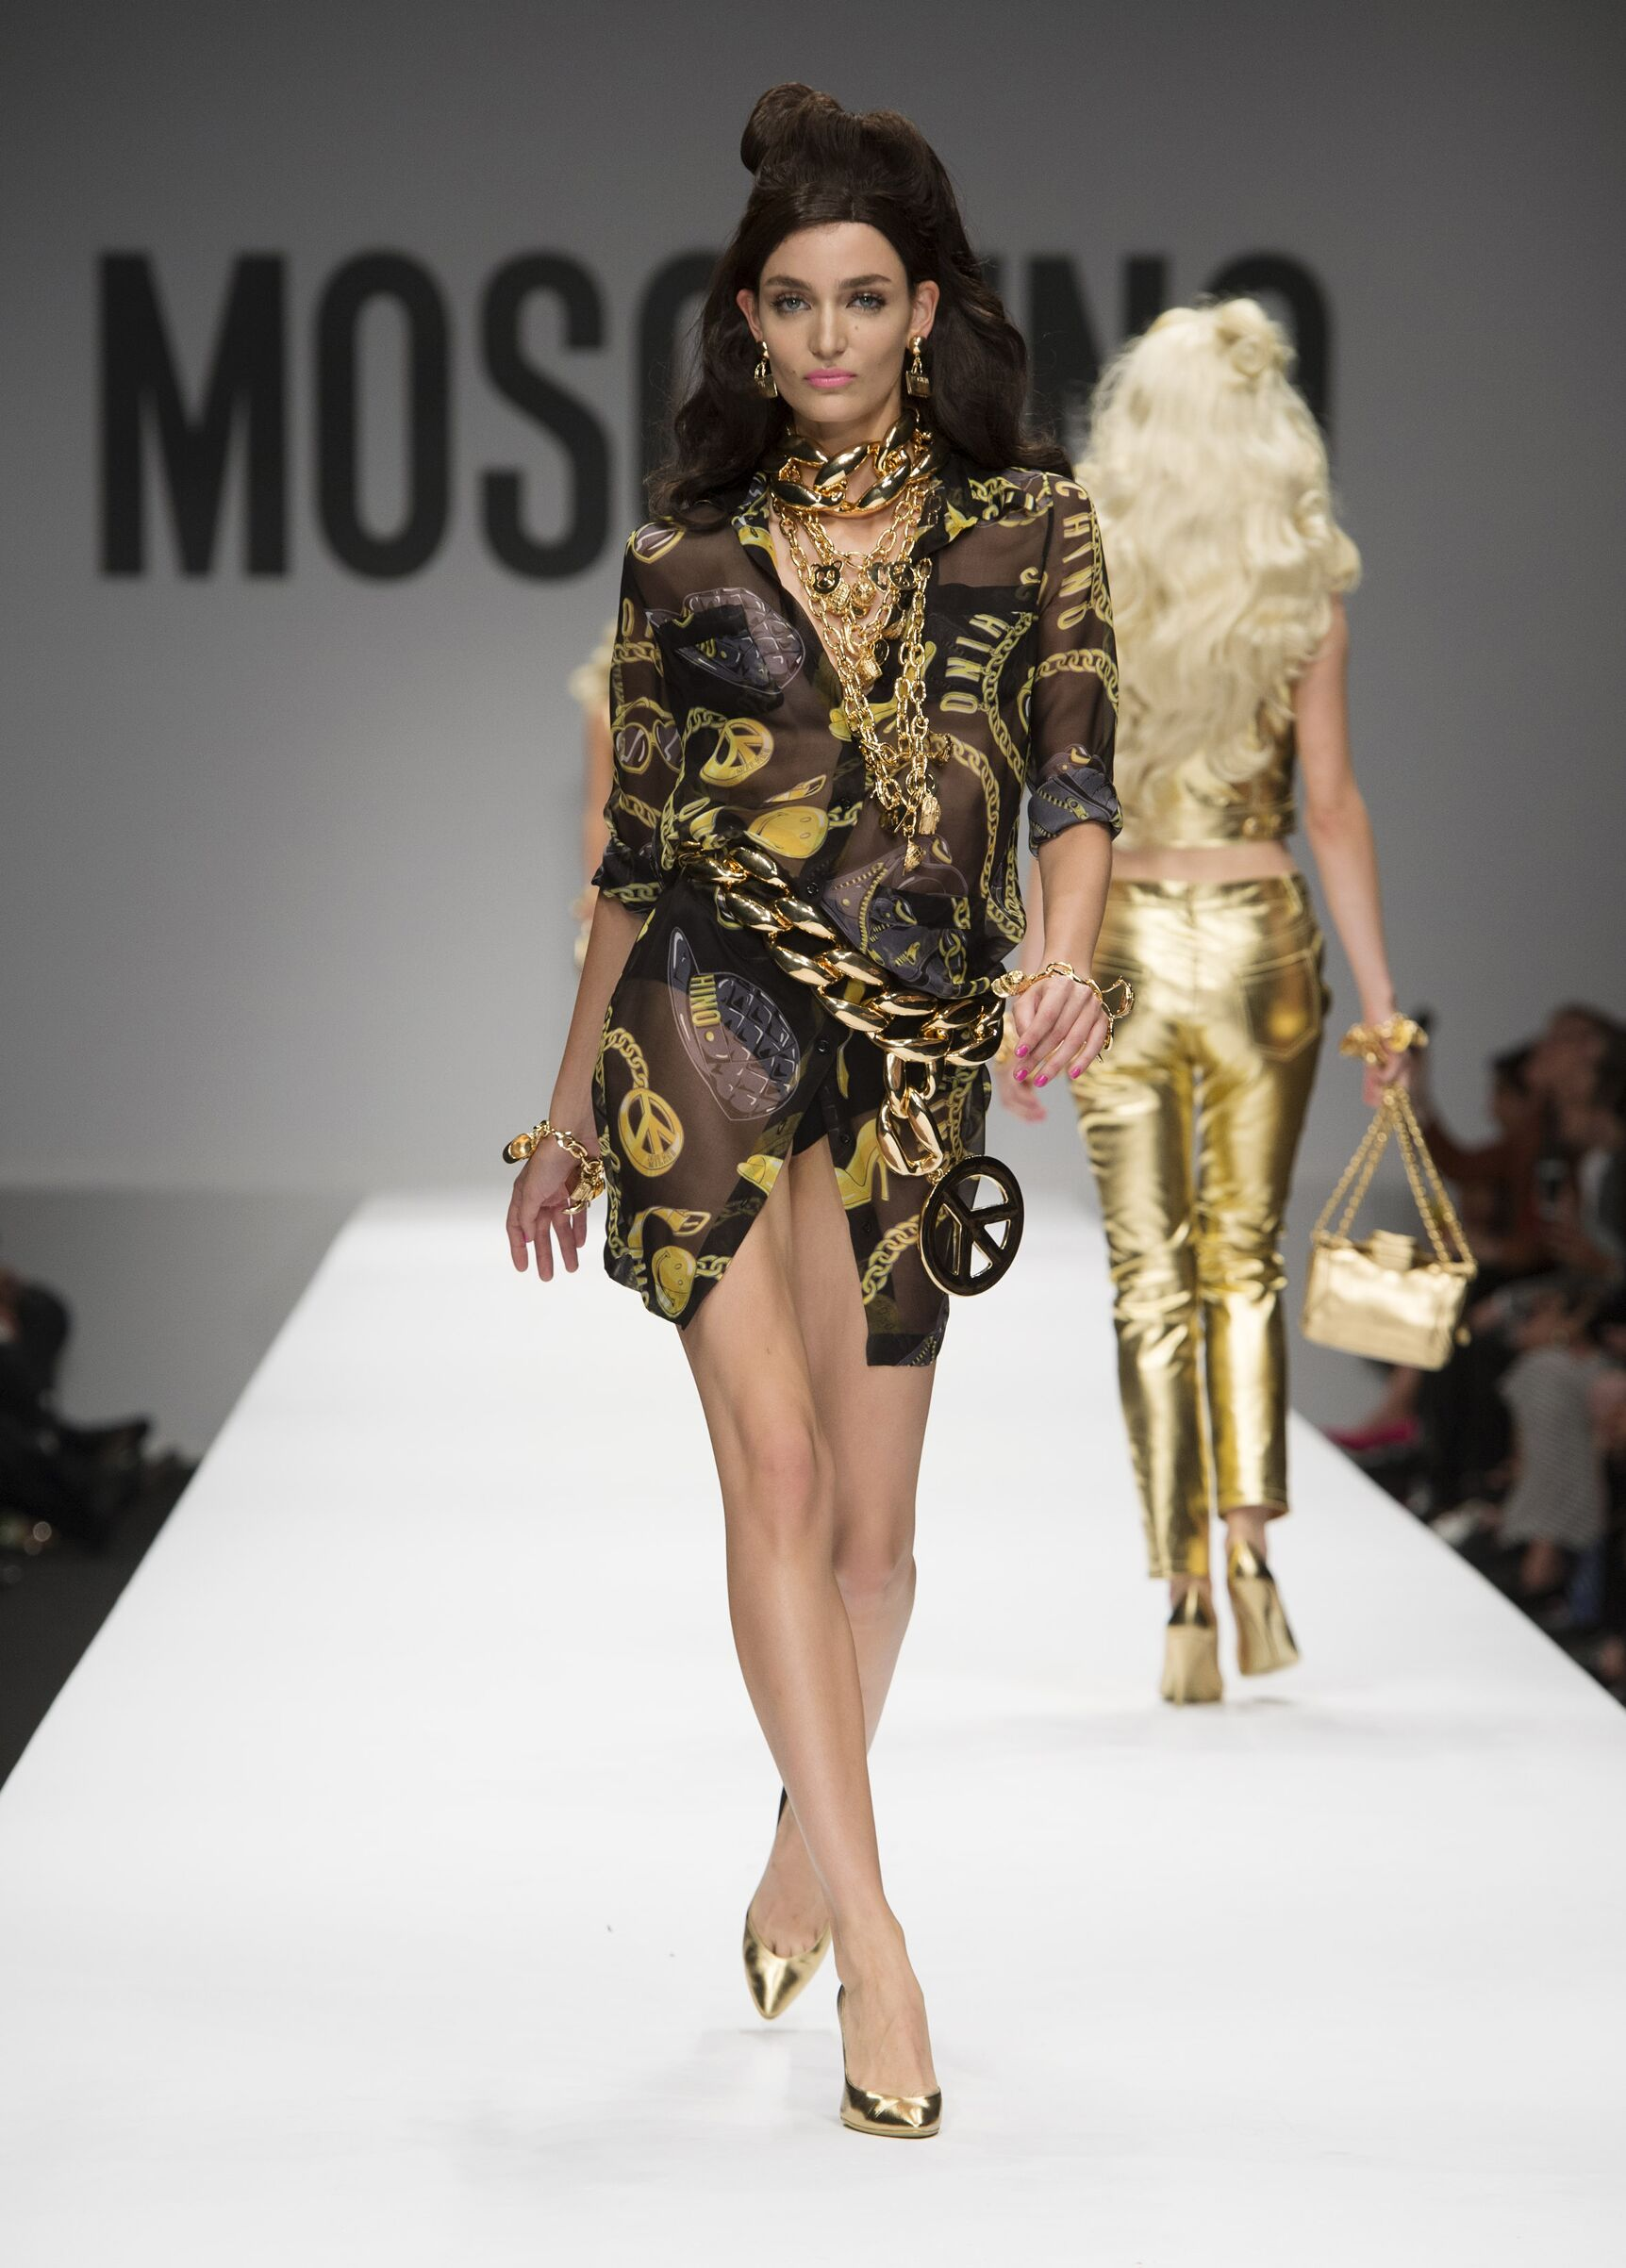 2015 Moschino Summer Catwalk